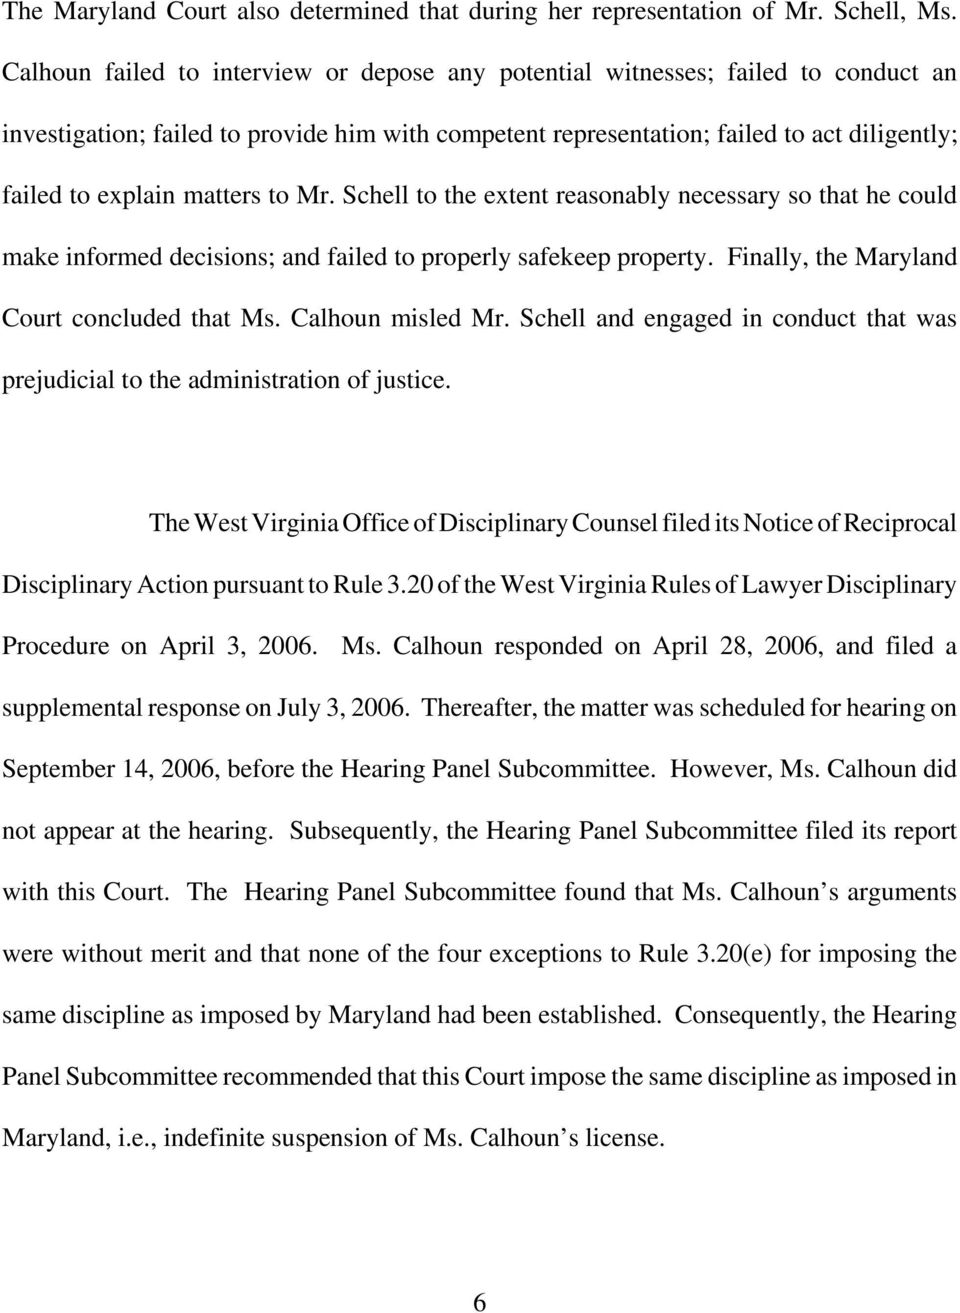 matters to Mr. Schell to the extent reasonably necessary so that he could make informed decisions; and failed to properly safekeep property. Finally, the Maryland Court concluded that Ms.